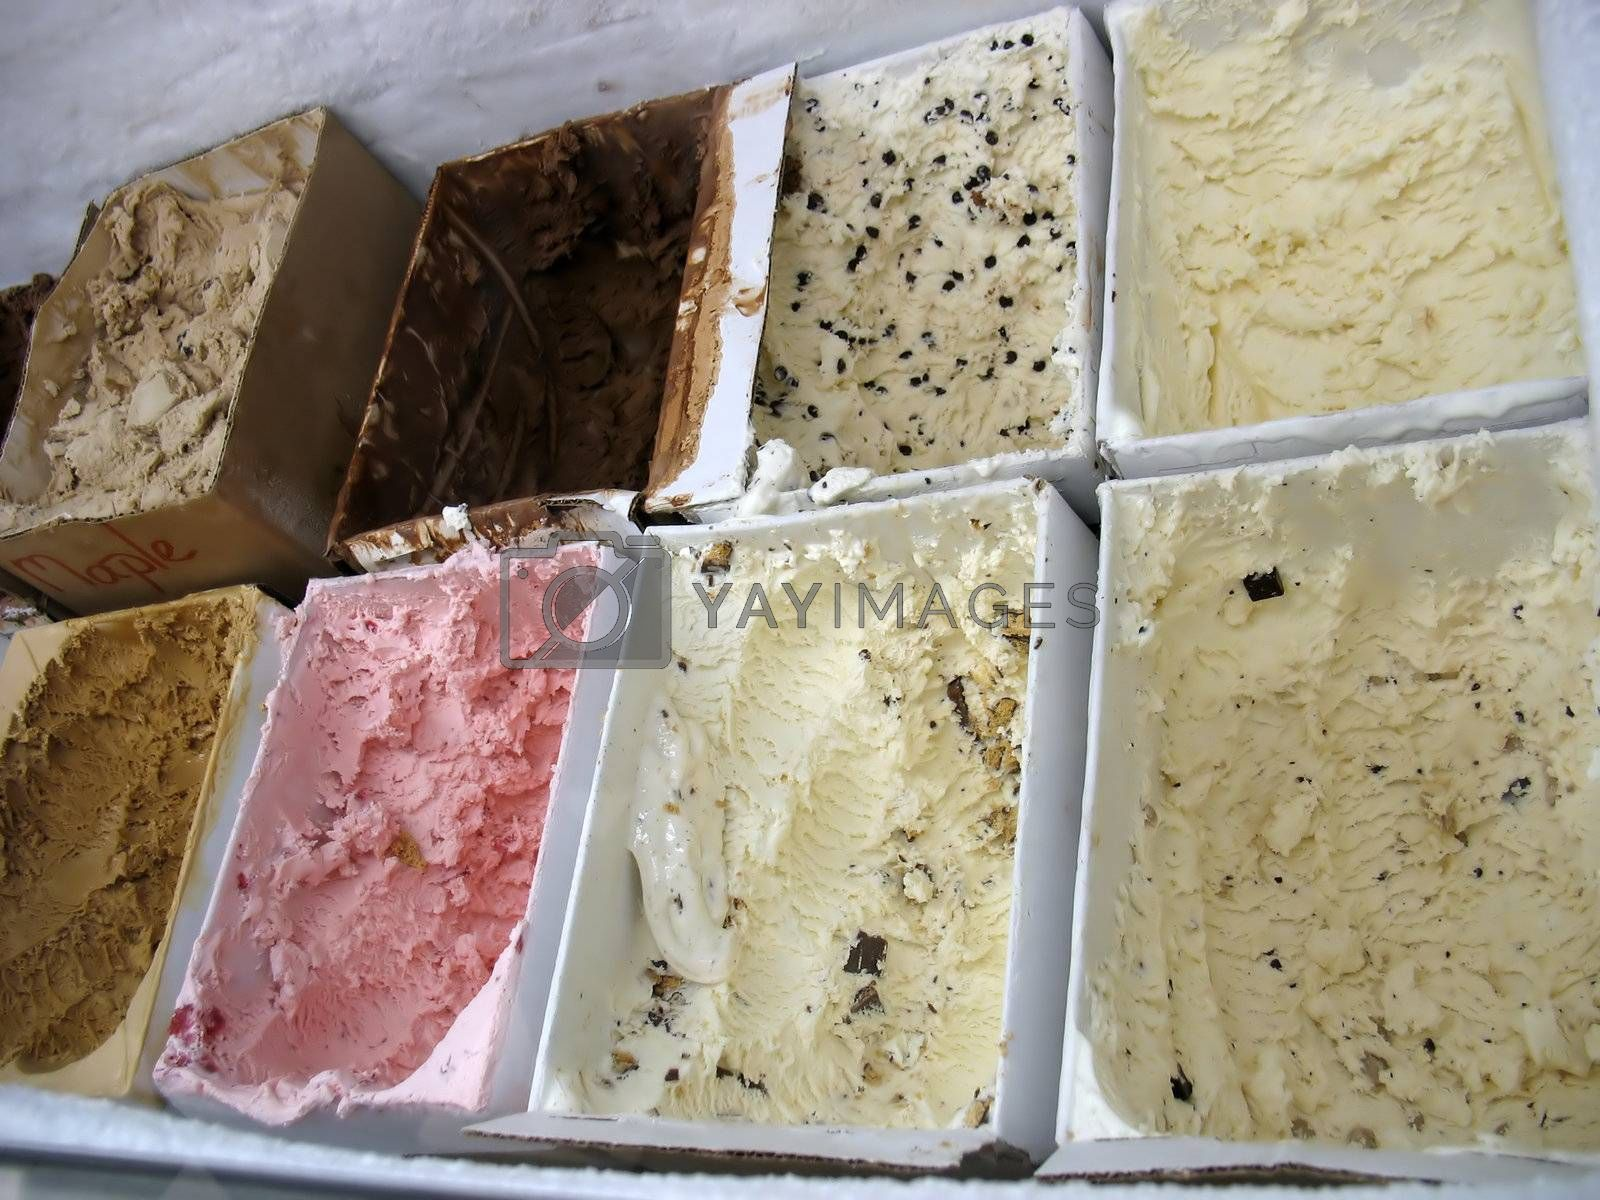 ICE CREAM - So many flavors - how do you pick just one?